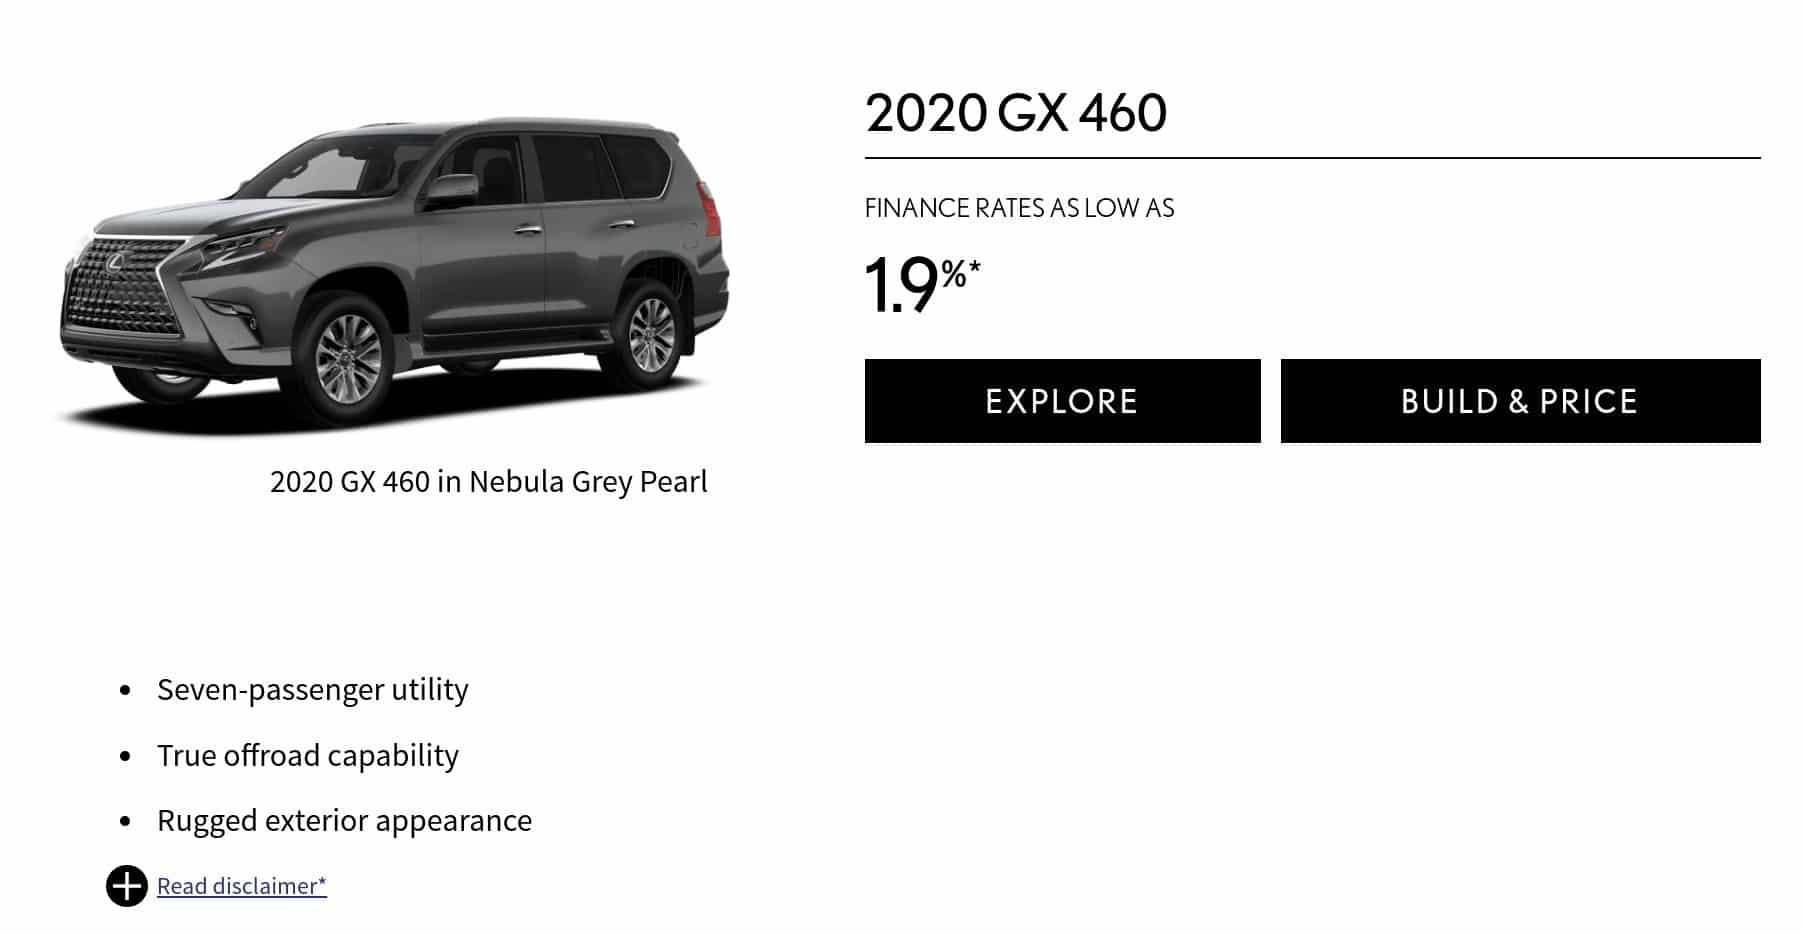 2020 Lexus GX460 is one of the best 7 seater suv lease and finance deals